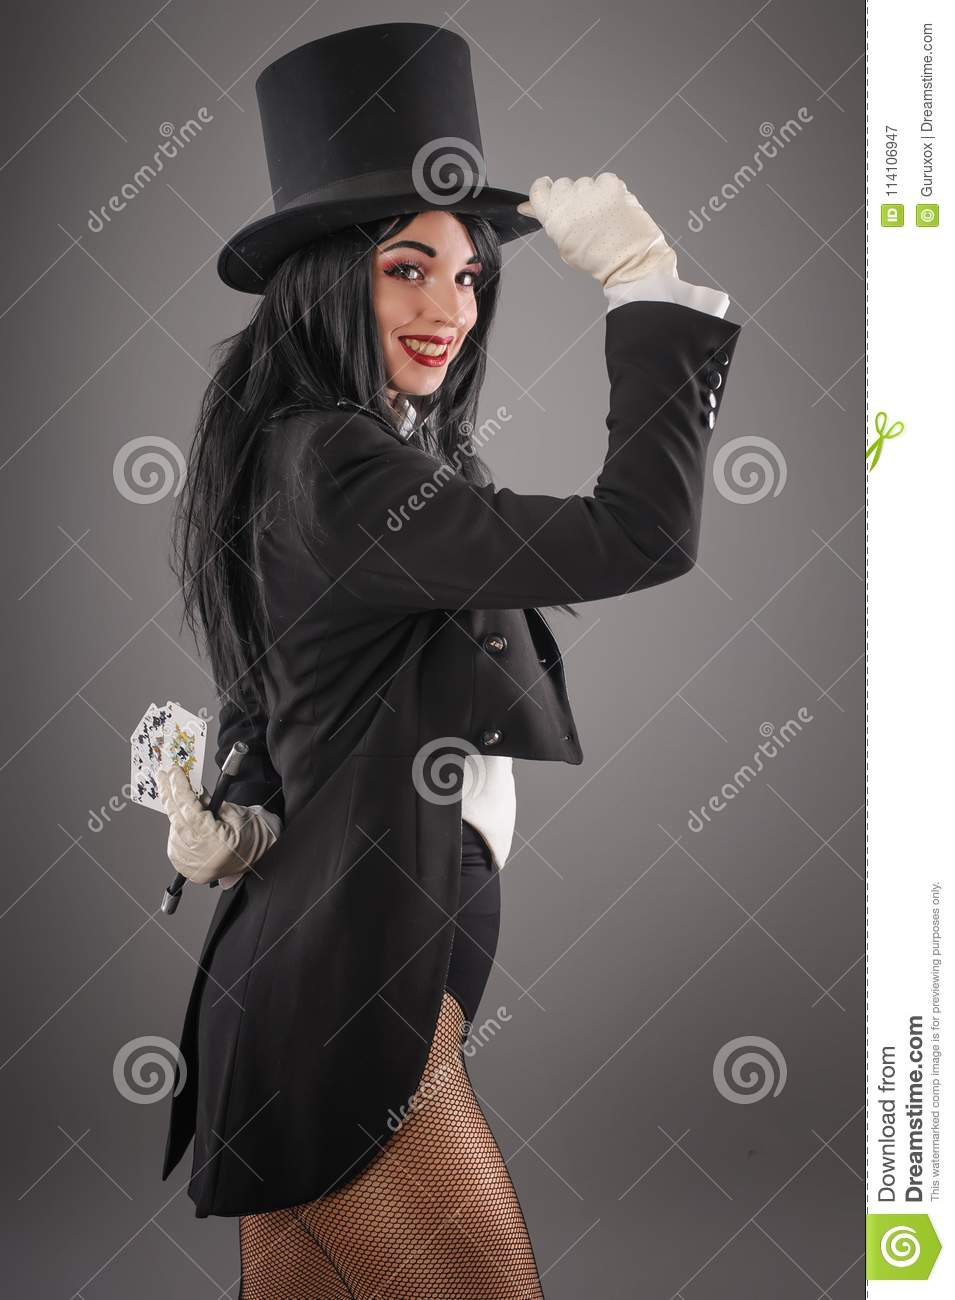 Female magician in performer suit with magic wand and playing ca